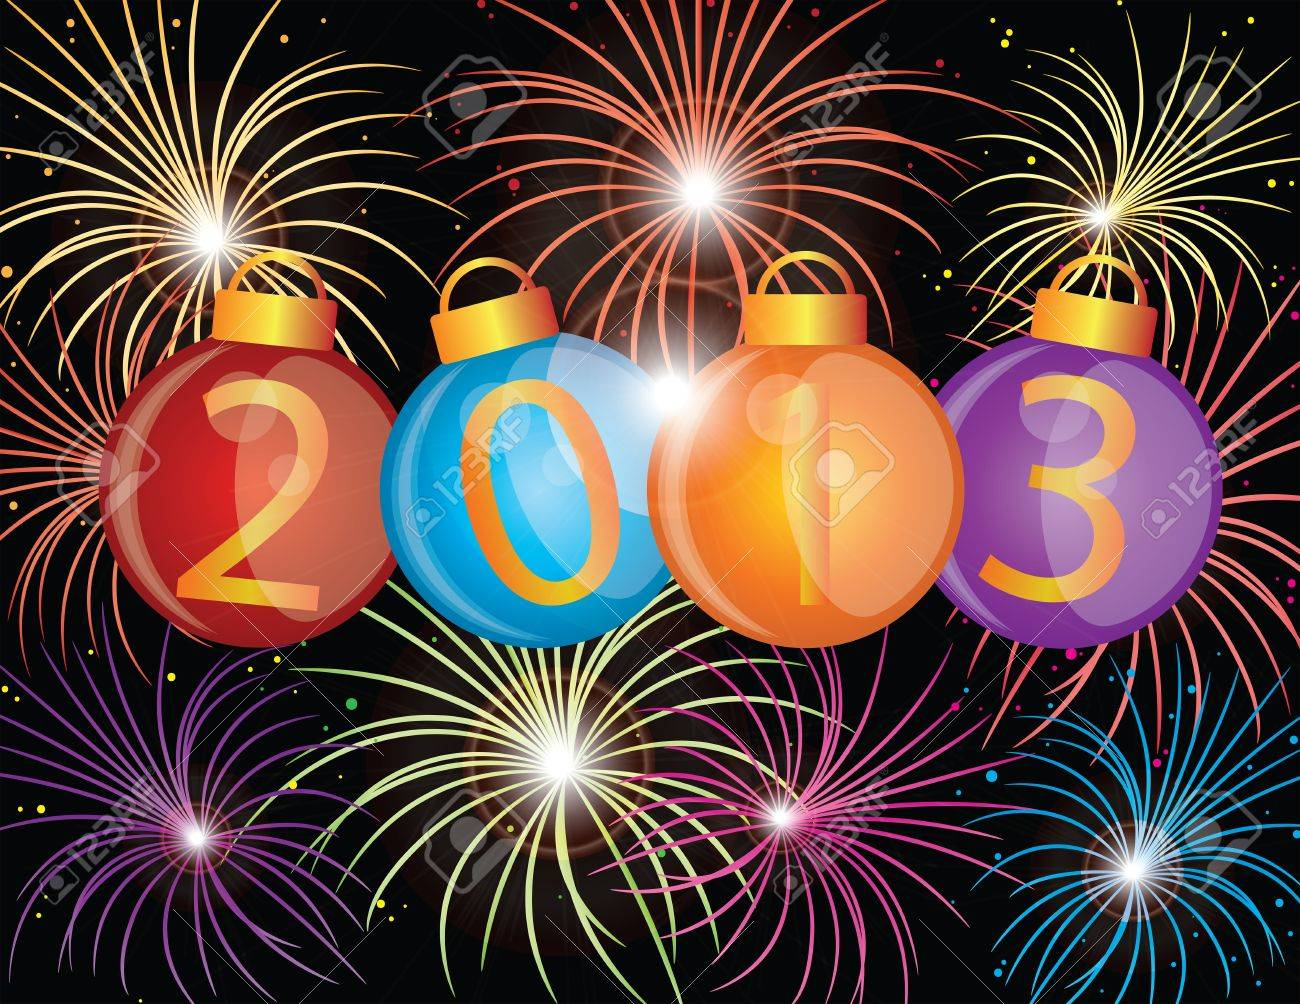 2013 Happy New Year Christmas Ornaments with Fireworks Display Background Illustration Stock Illustration - 13539226